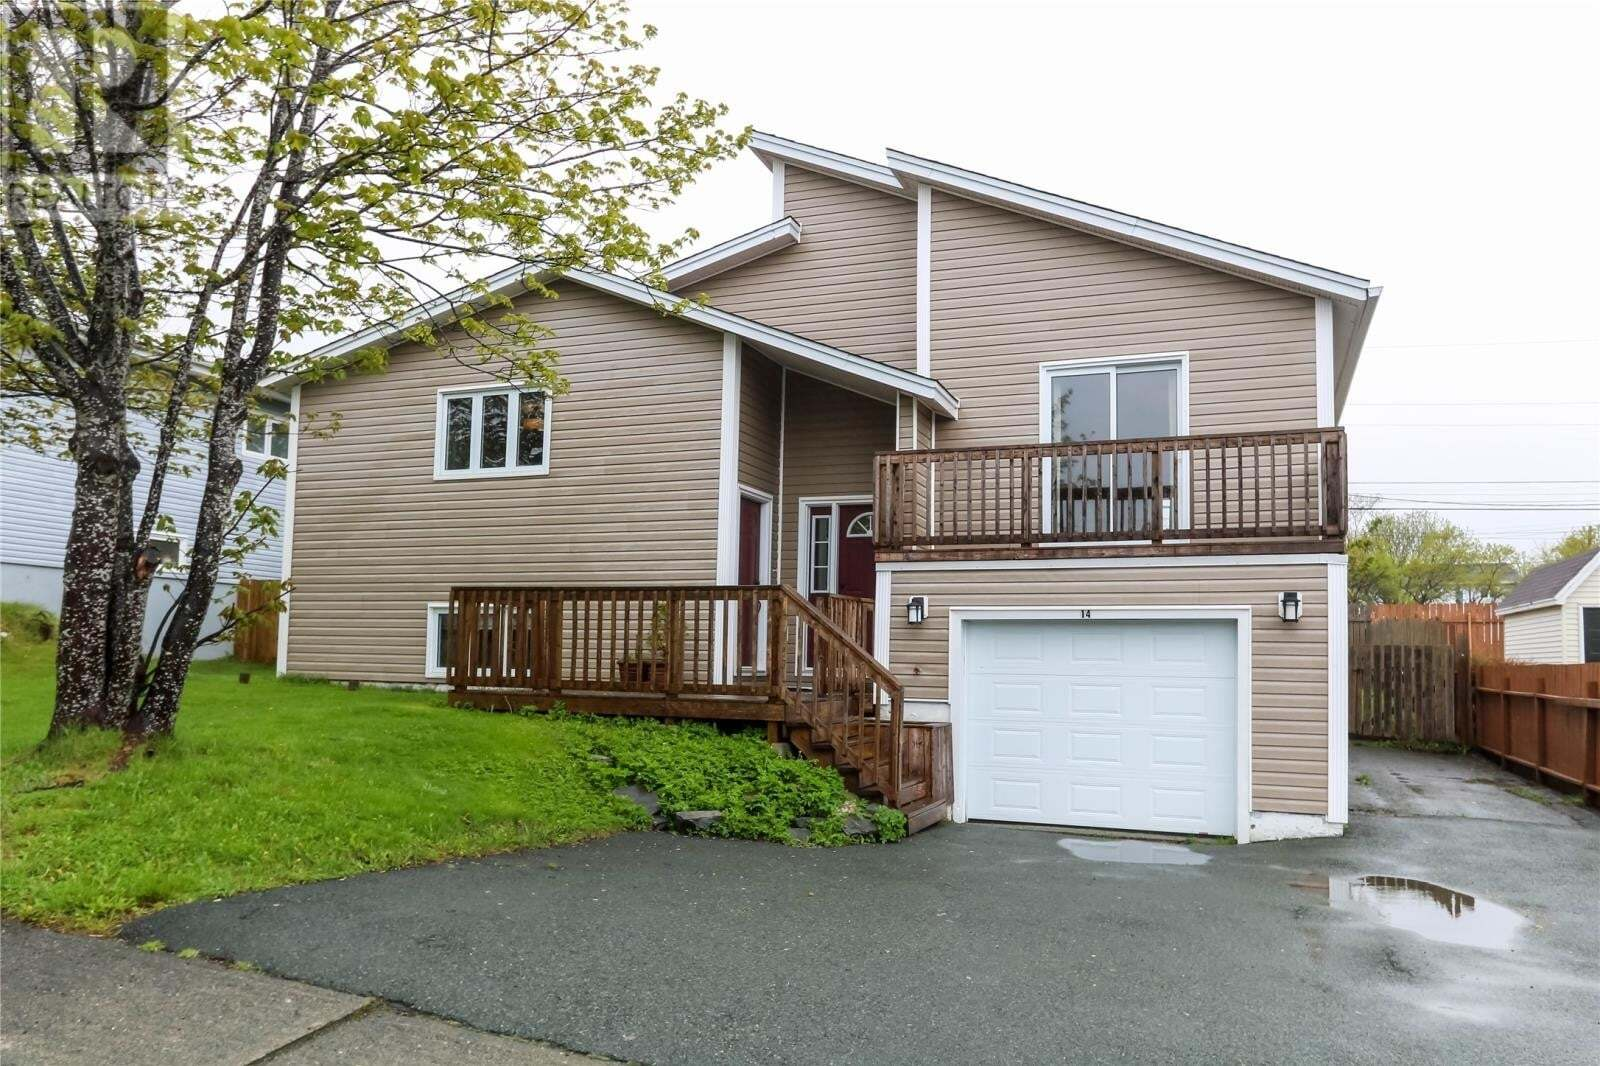 House for sale at 14 Cambridge Ave St. John's Newfoundland - MLS: 1214663